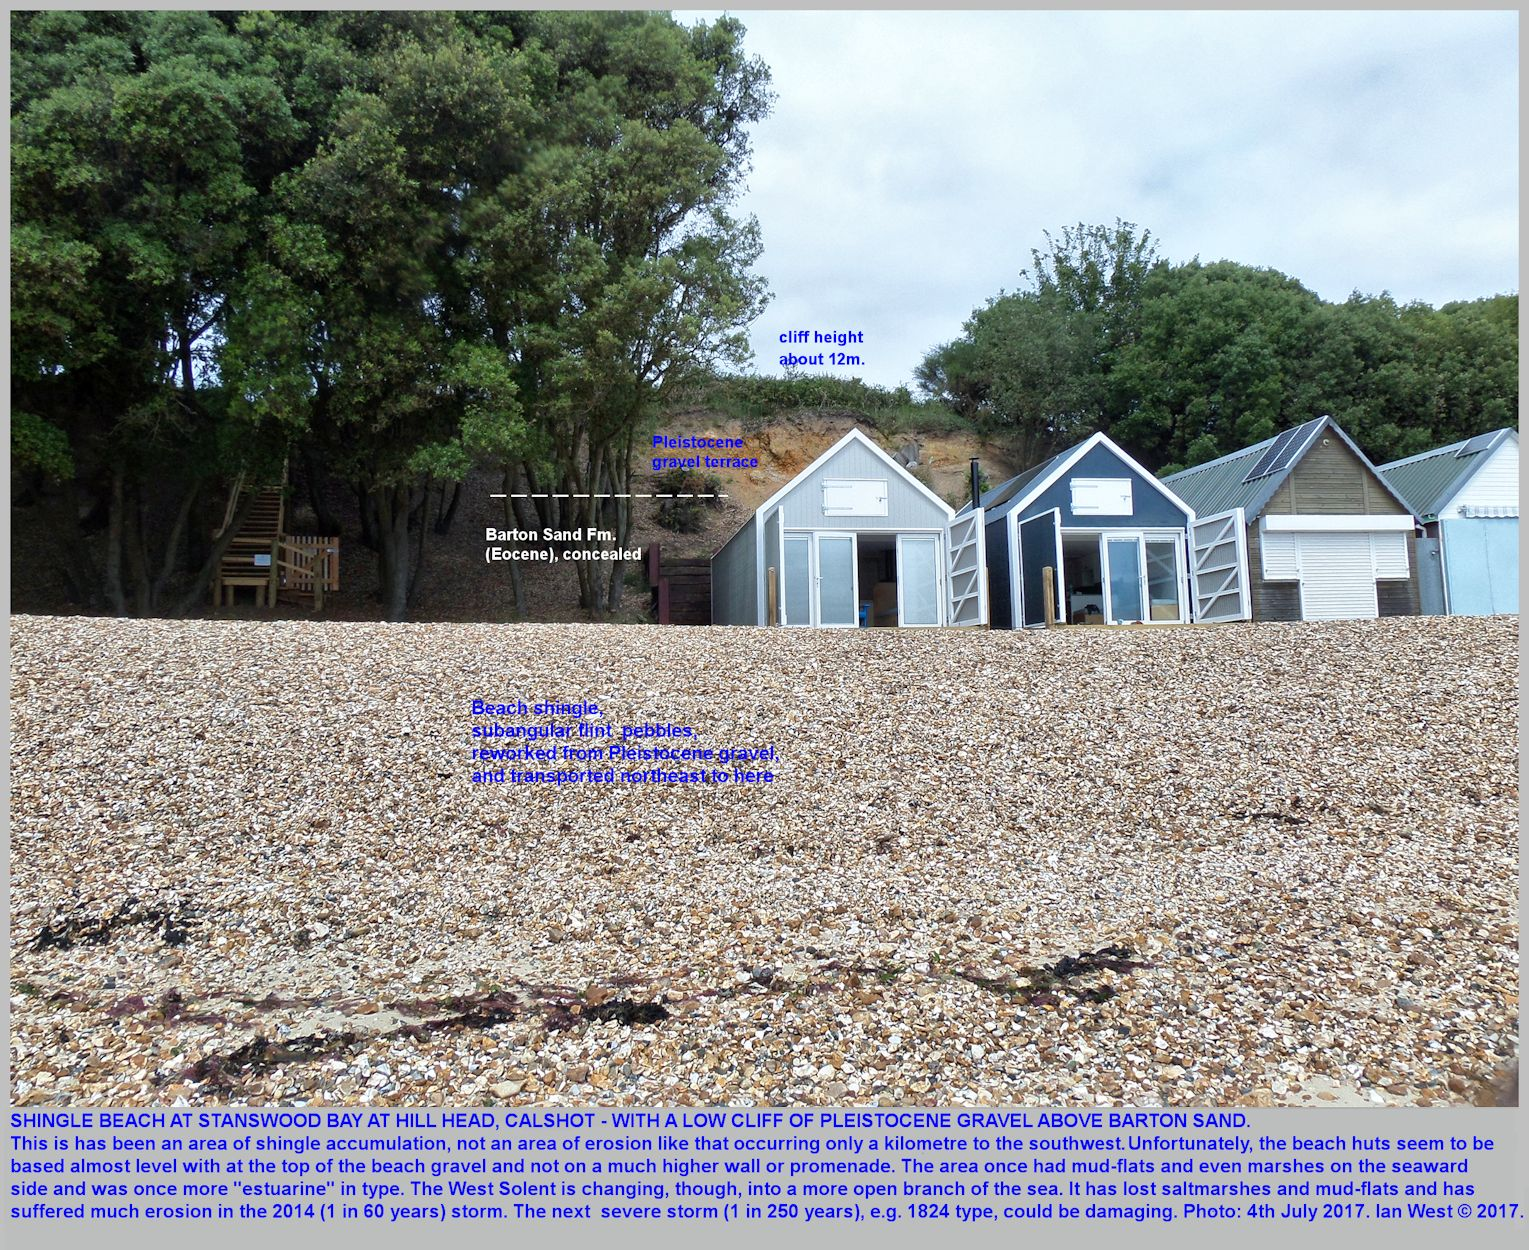 The shingle beach at Hill Head, Calshot, part of Stanswood Bay, and with beach huts placed rather low, just at the top of the shingle beach